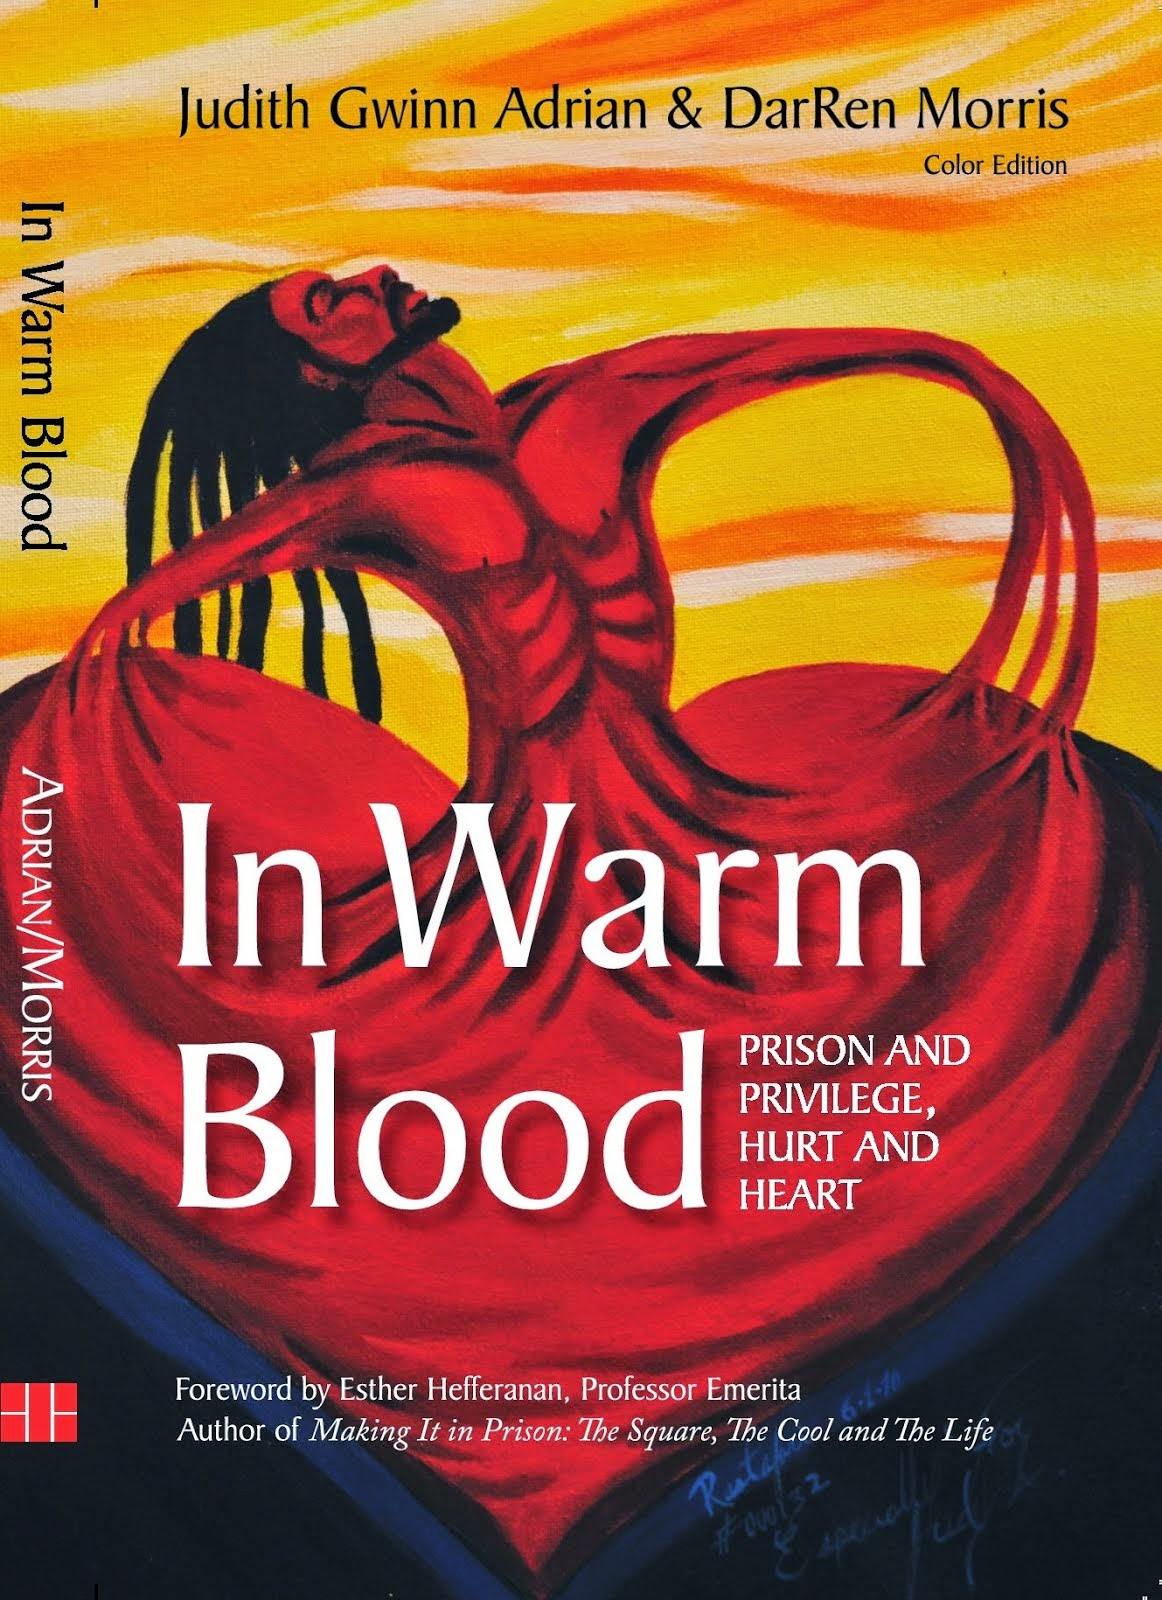 IN WARM BLOOD